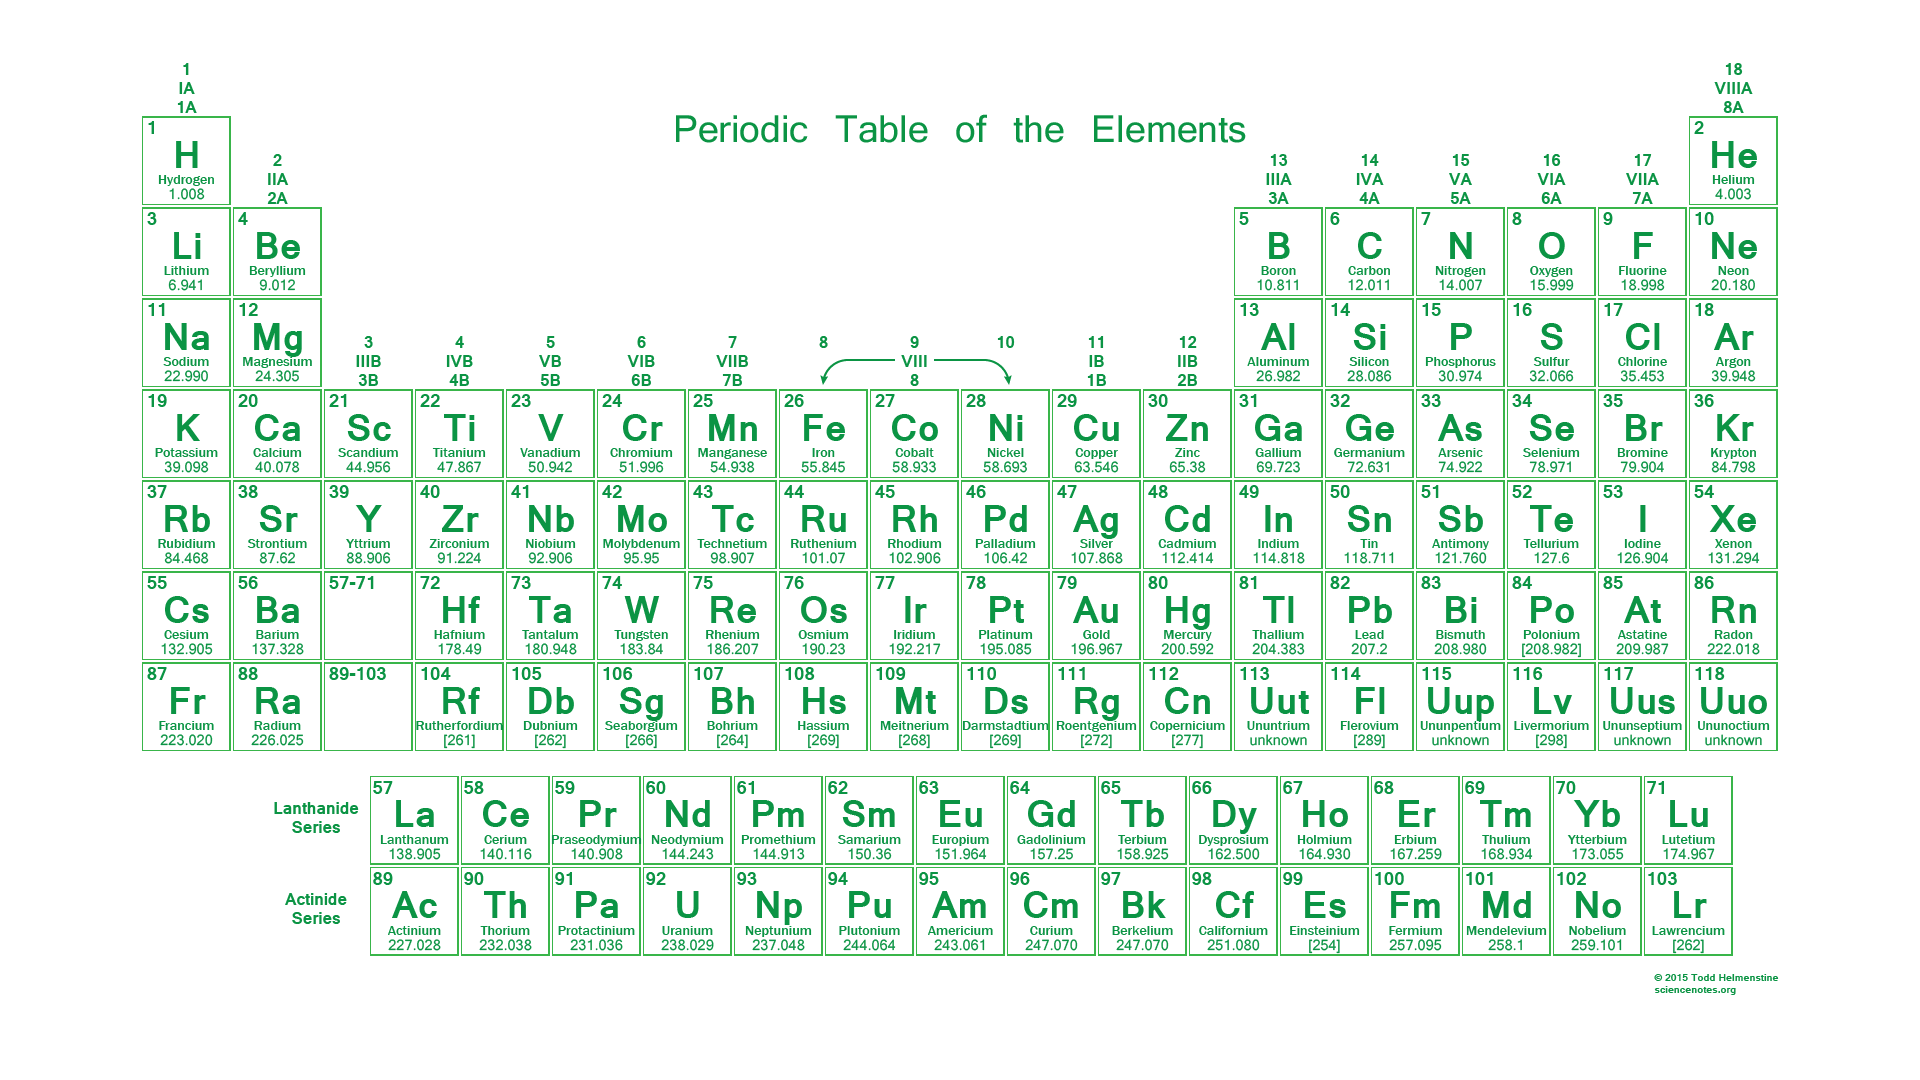 Transparent science translucent. Neon periodic table desktop